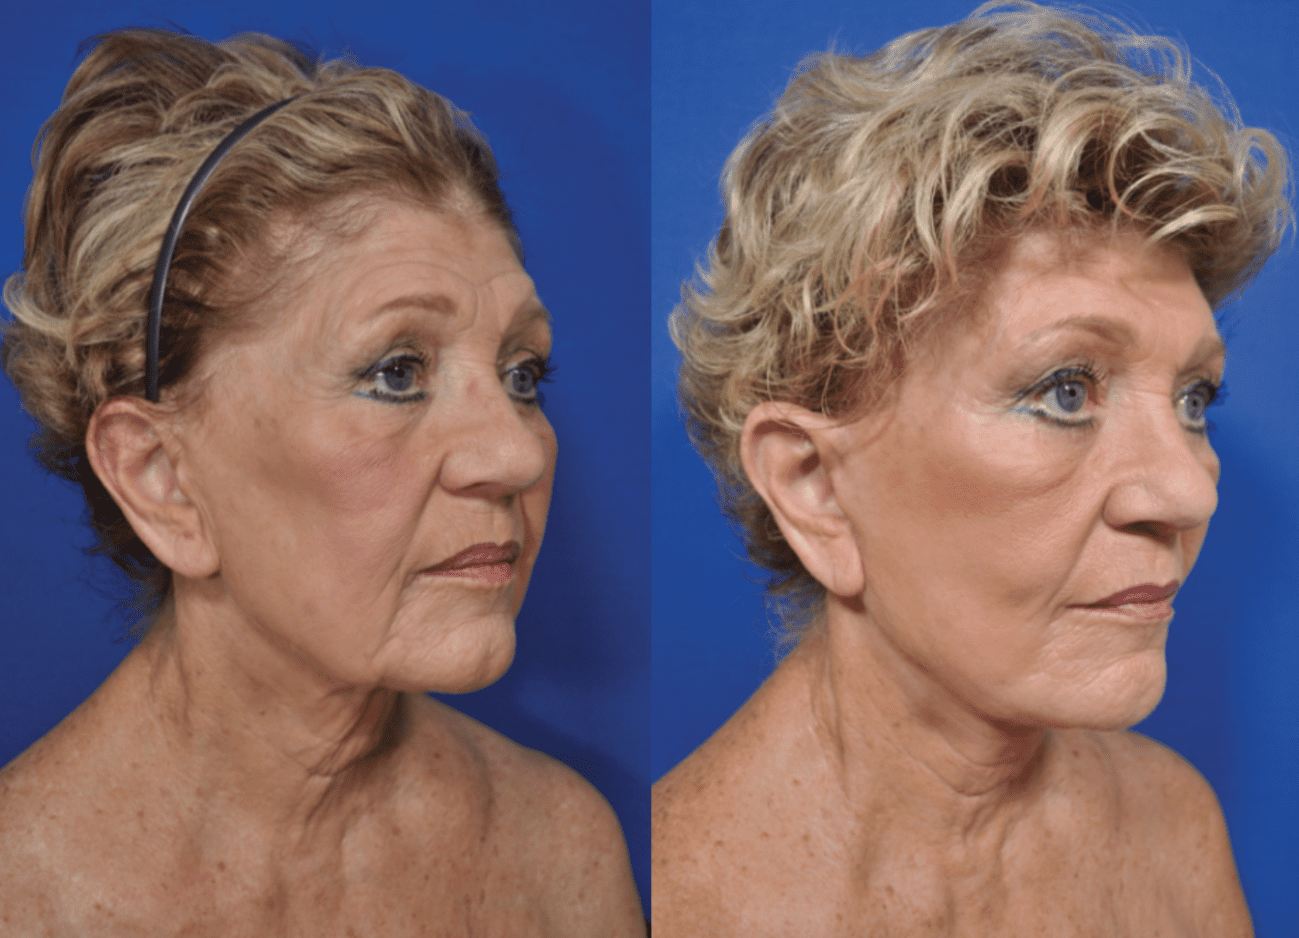 Face and Neck Lift Patient Before and After photos